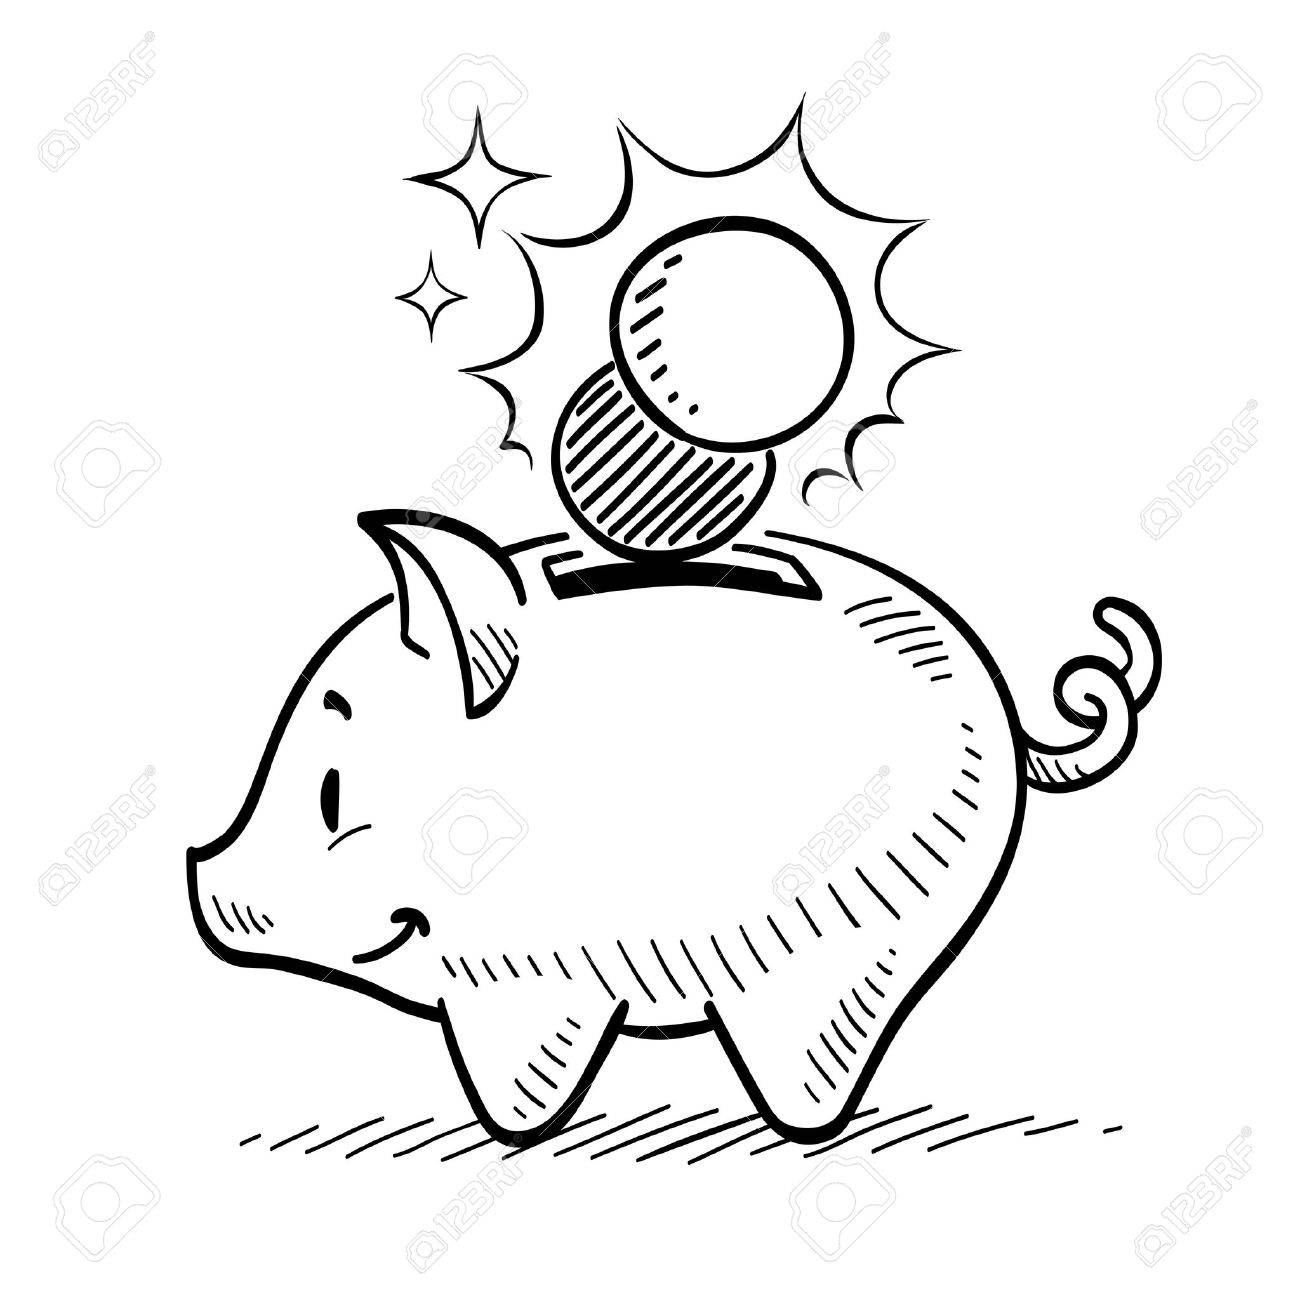 1300x1300 Piggy Bank Royalty Free Cliparts, Vectors, And Stock Illustration